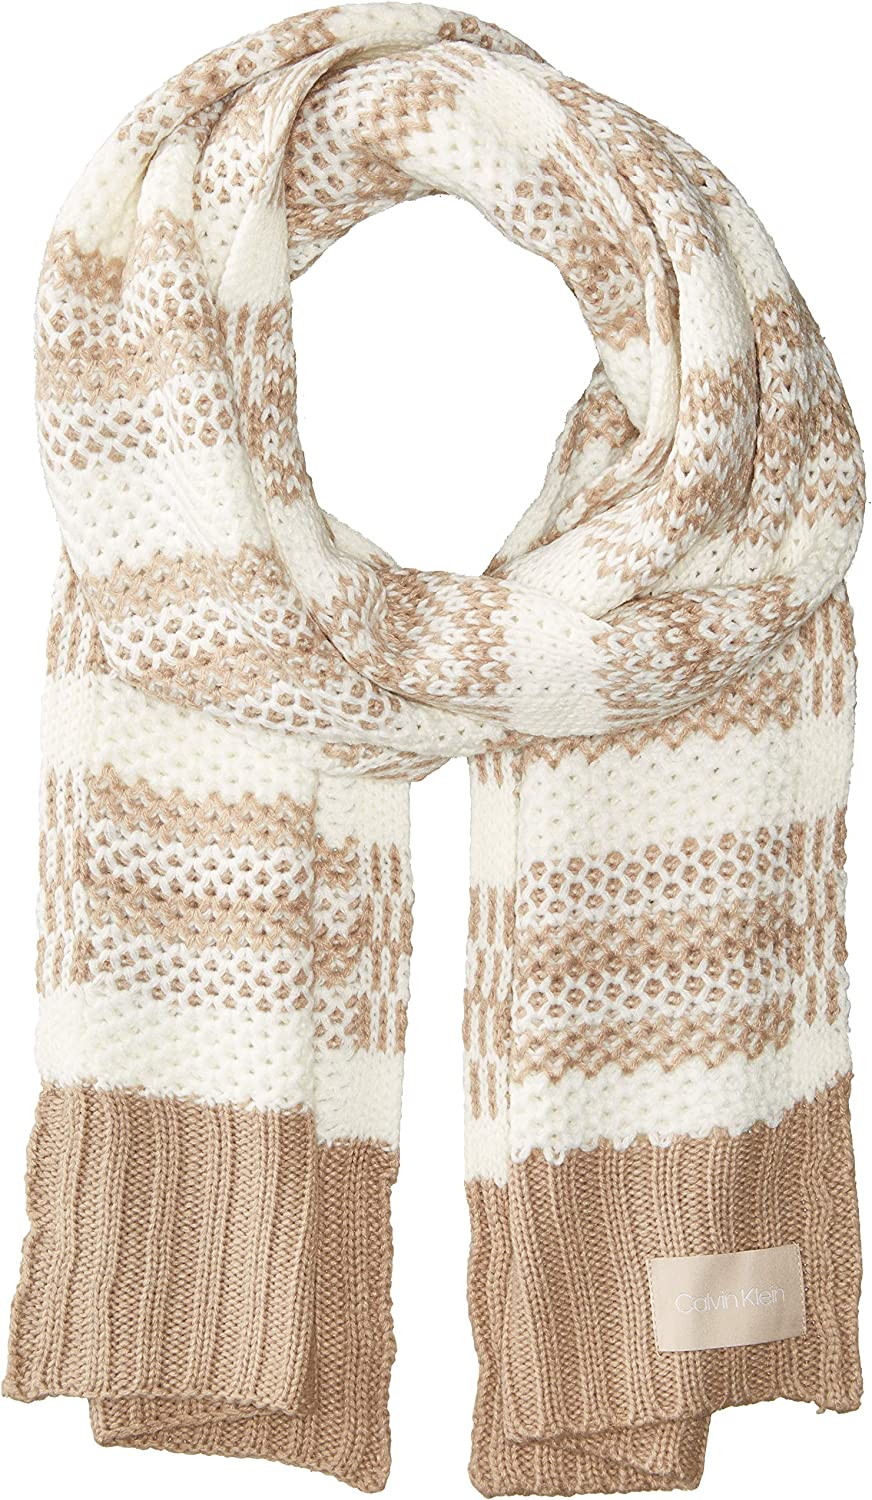 Calvin Klein womens Honeycomb Stripe Oakland Mall Same day shipping Scarf